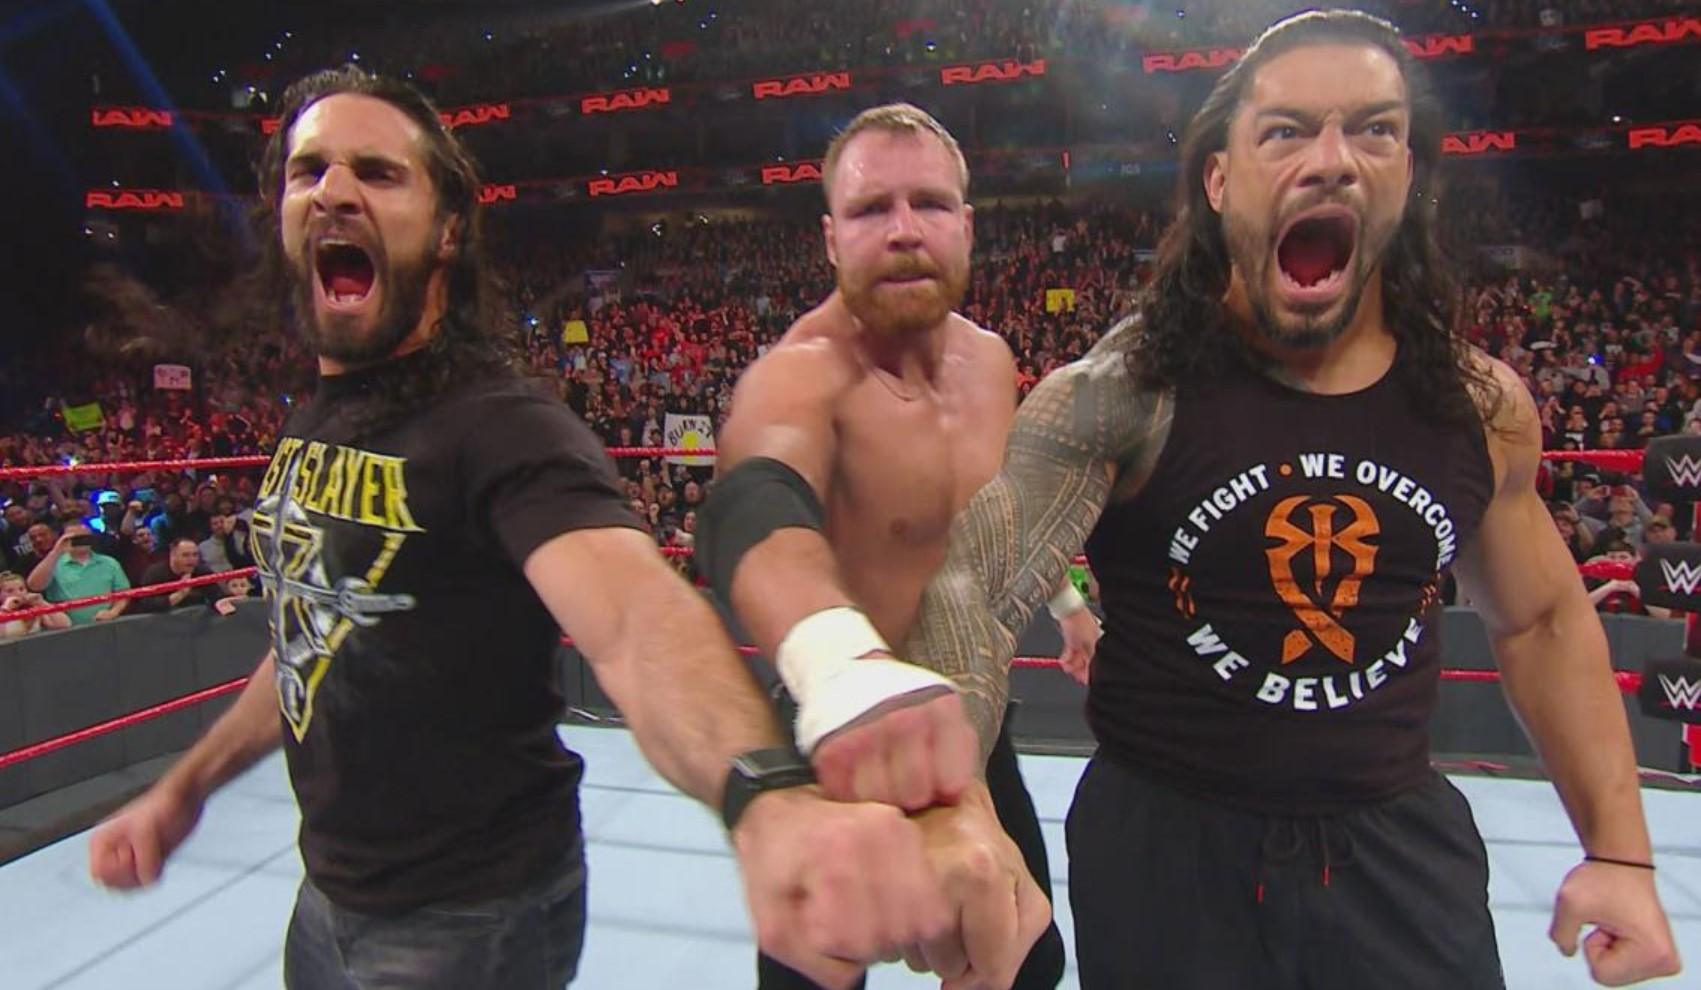 The Shield is reuniting at WWE Fastlane, but will it be the last time?